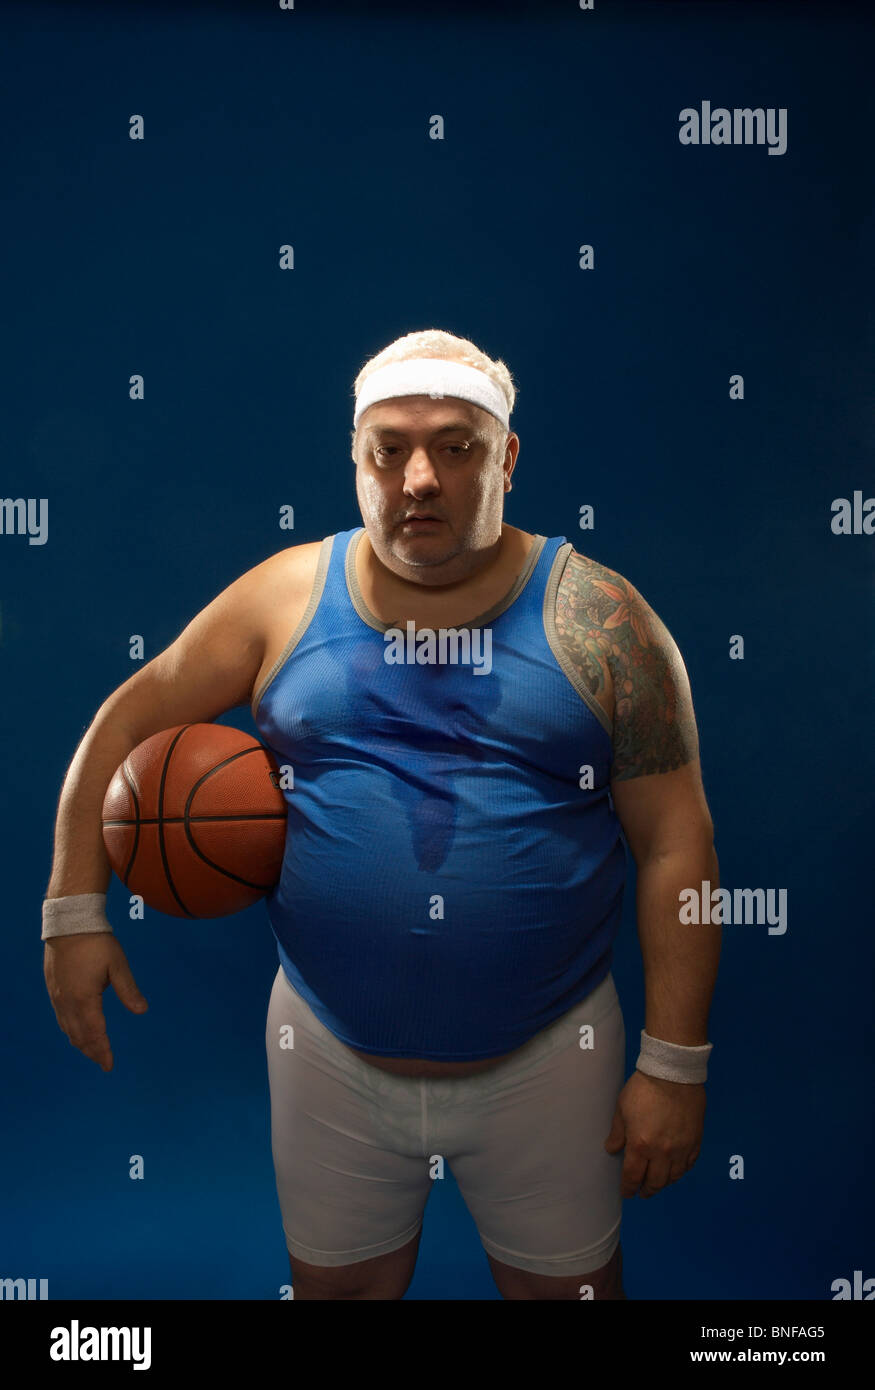 Large sportsman holding basketball - Stock Image